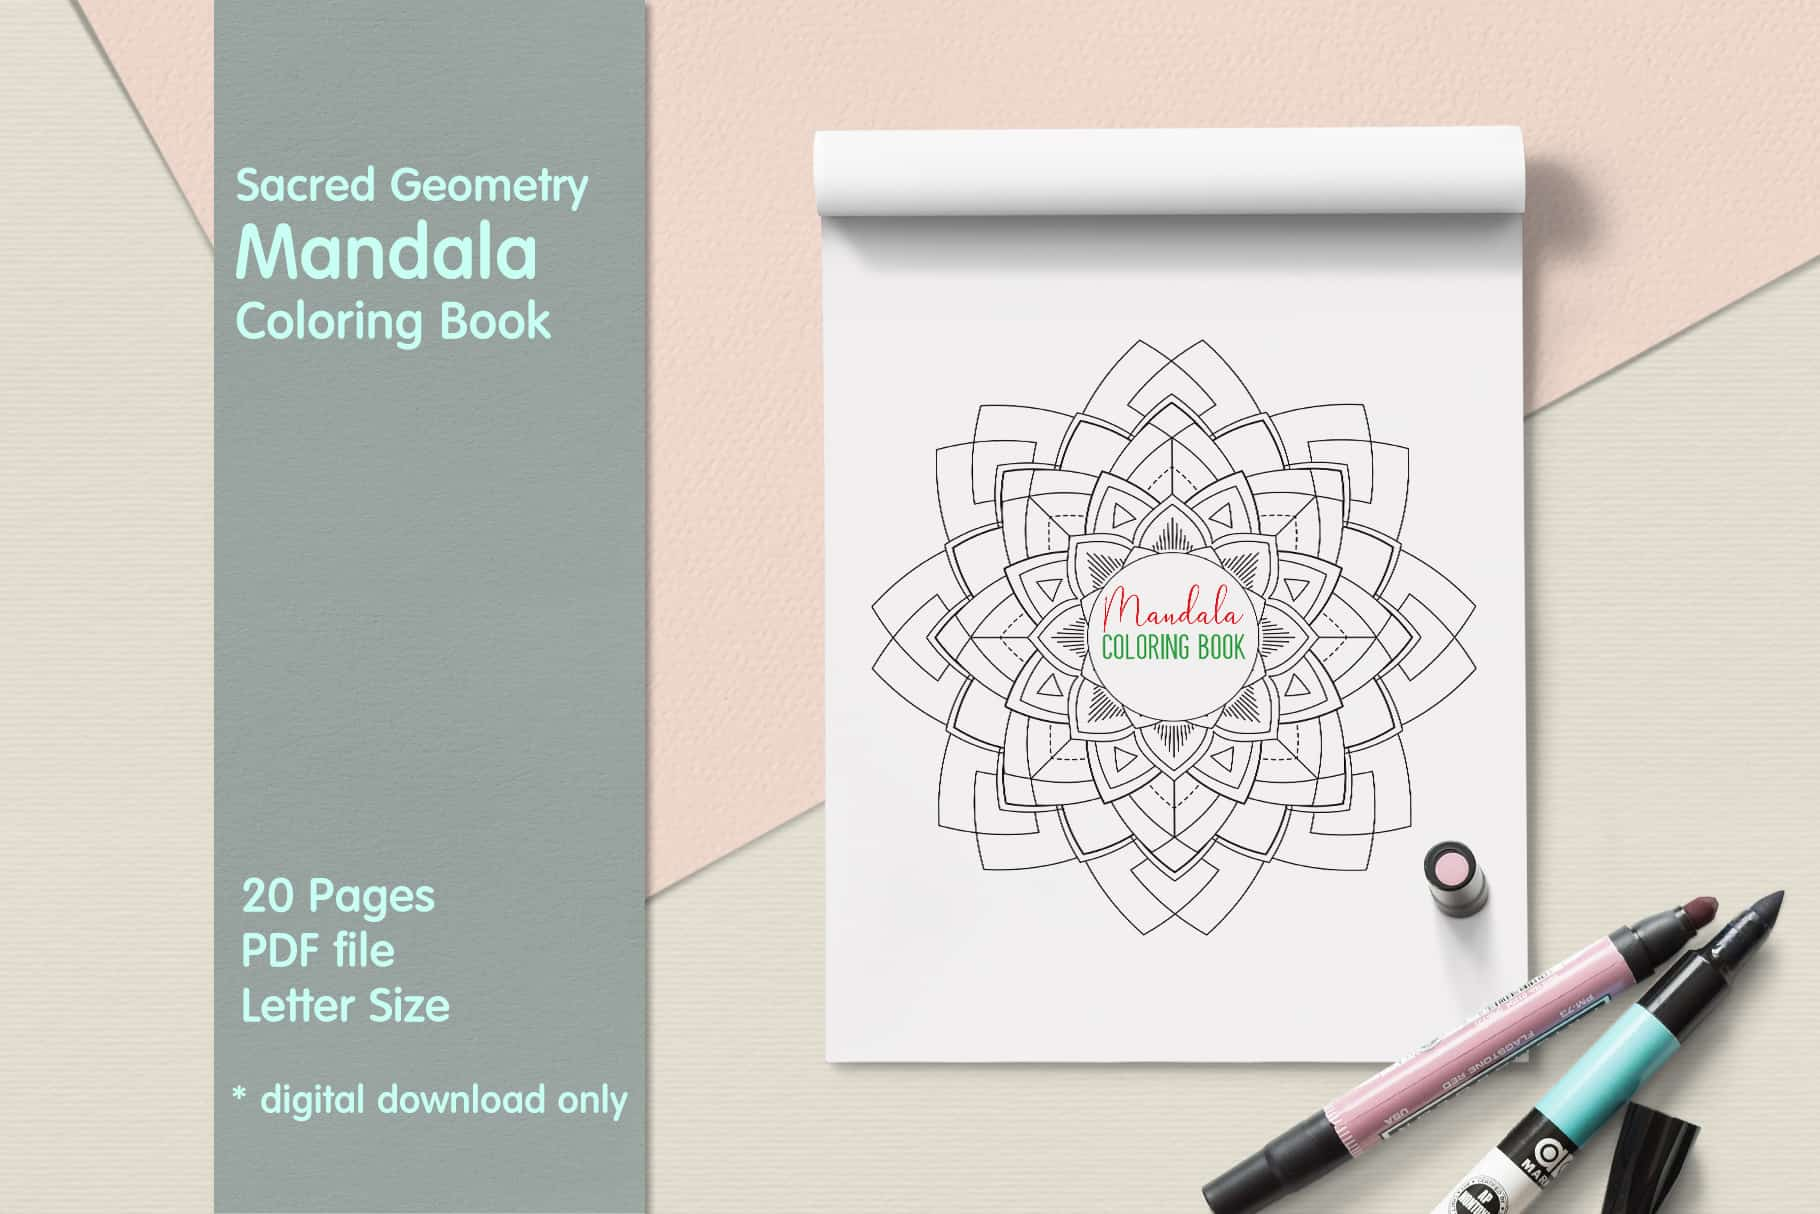 Sacred Geometry Mandala Coloring Book Pdf 20 Pages 8 5 X 11 Printable Digital Hand Drawn Coloring Pages Relaxation Coloring For Adults Mrlightroom Premium Lightroom Presets Photoshop Overlays And Templates